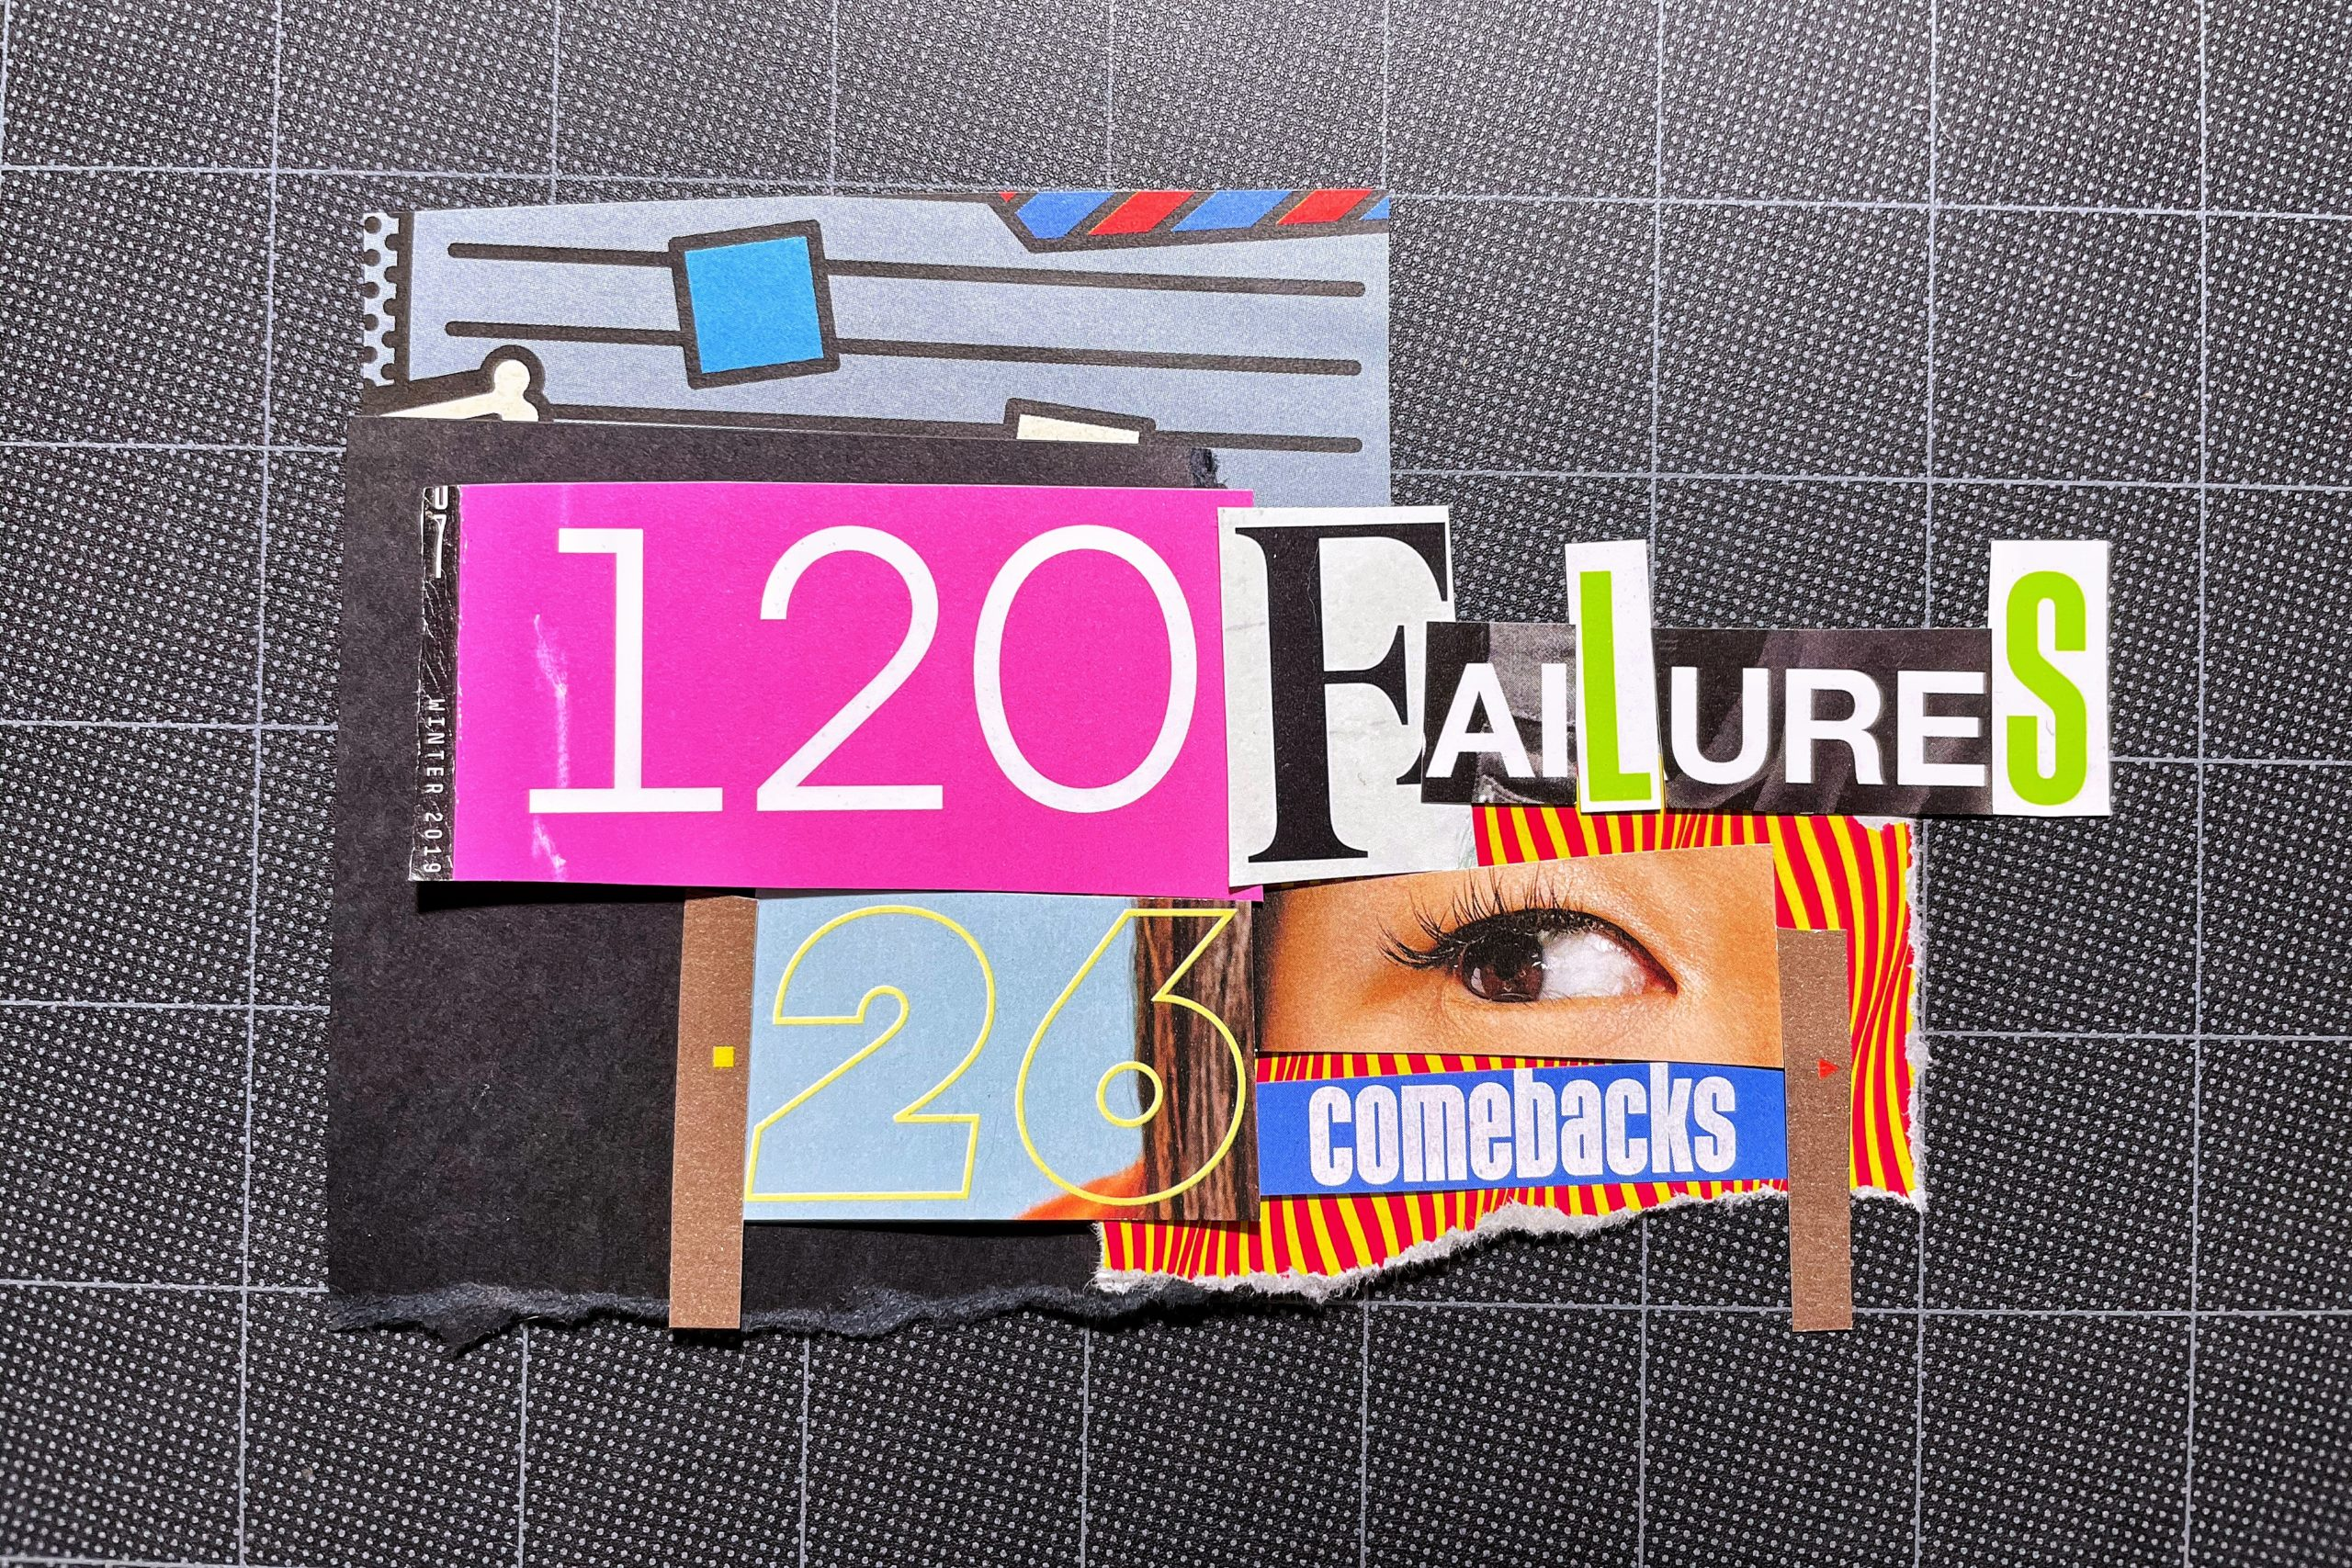 Collage artwork about failure